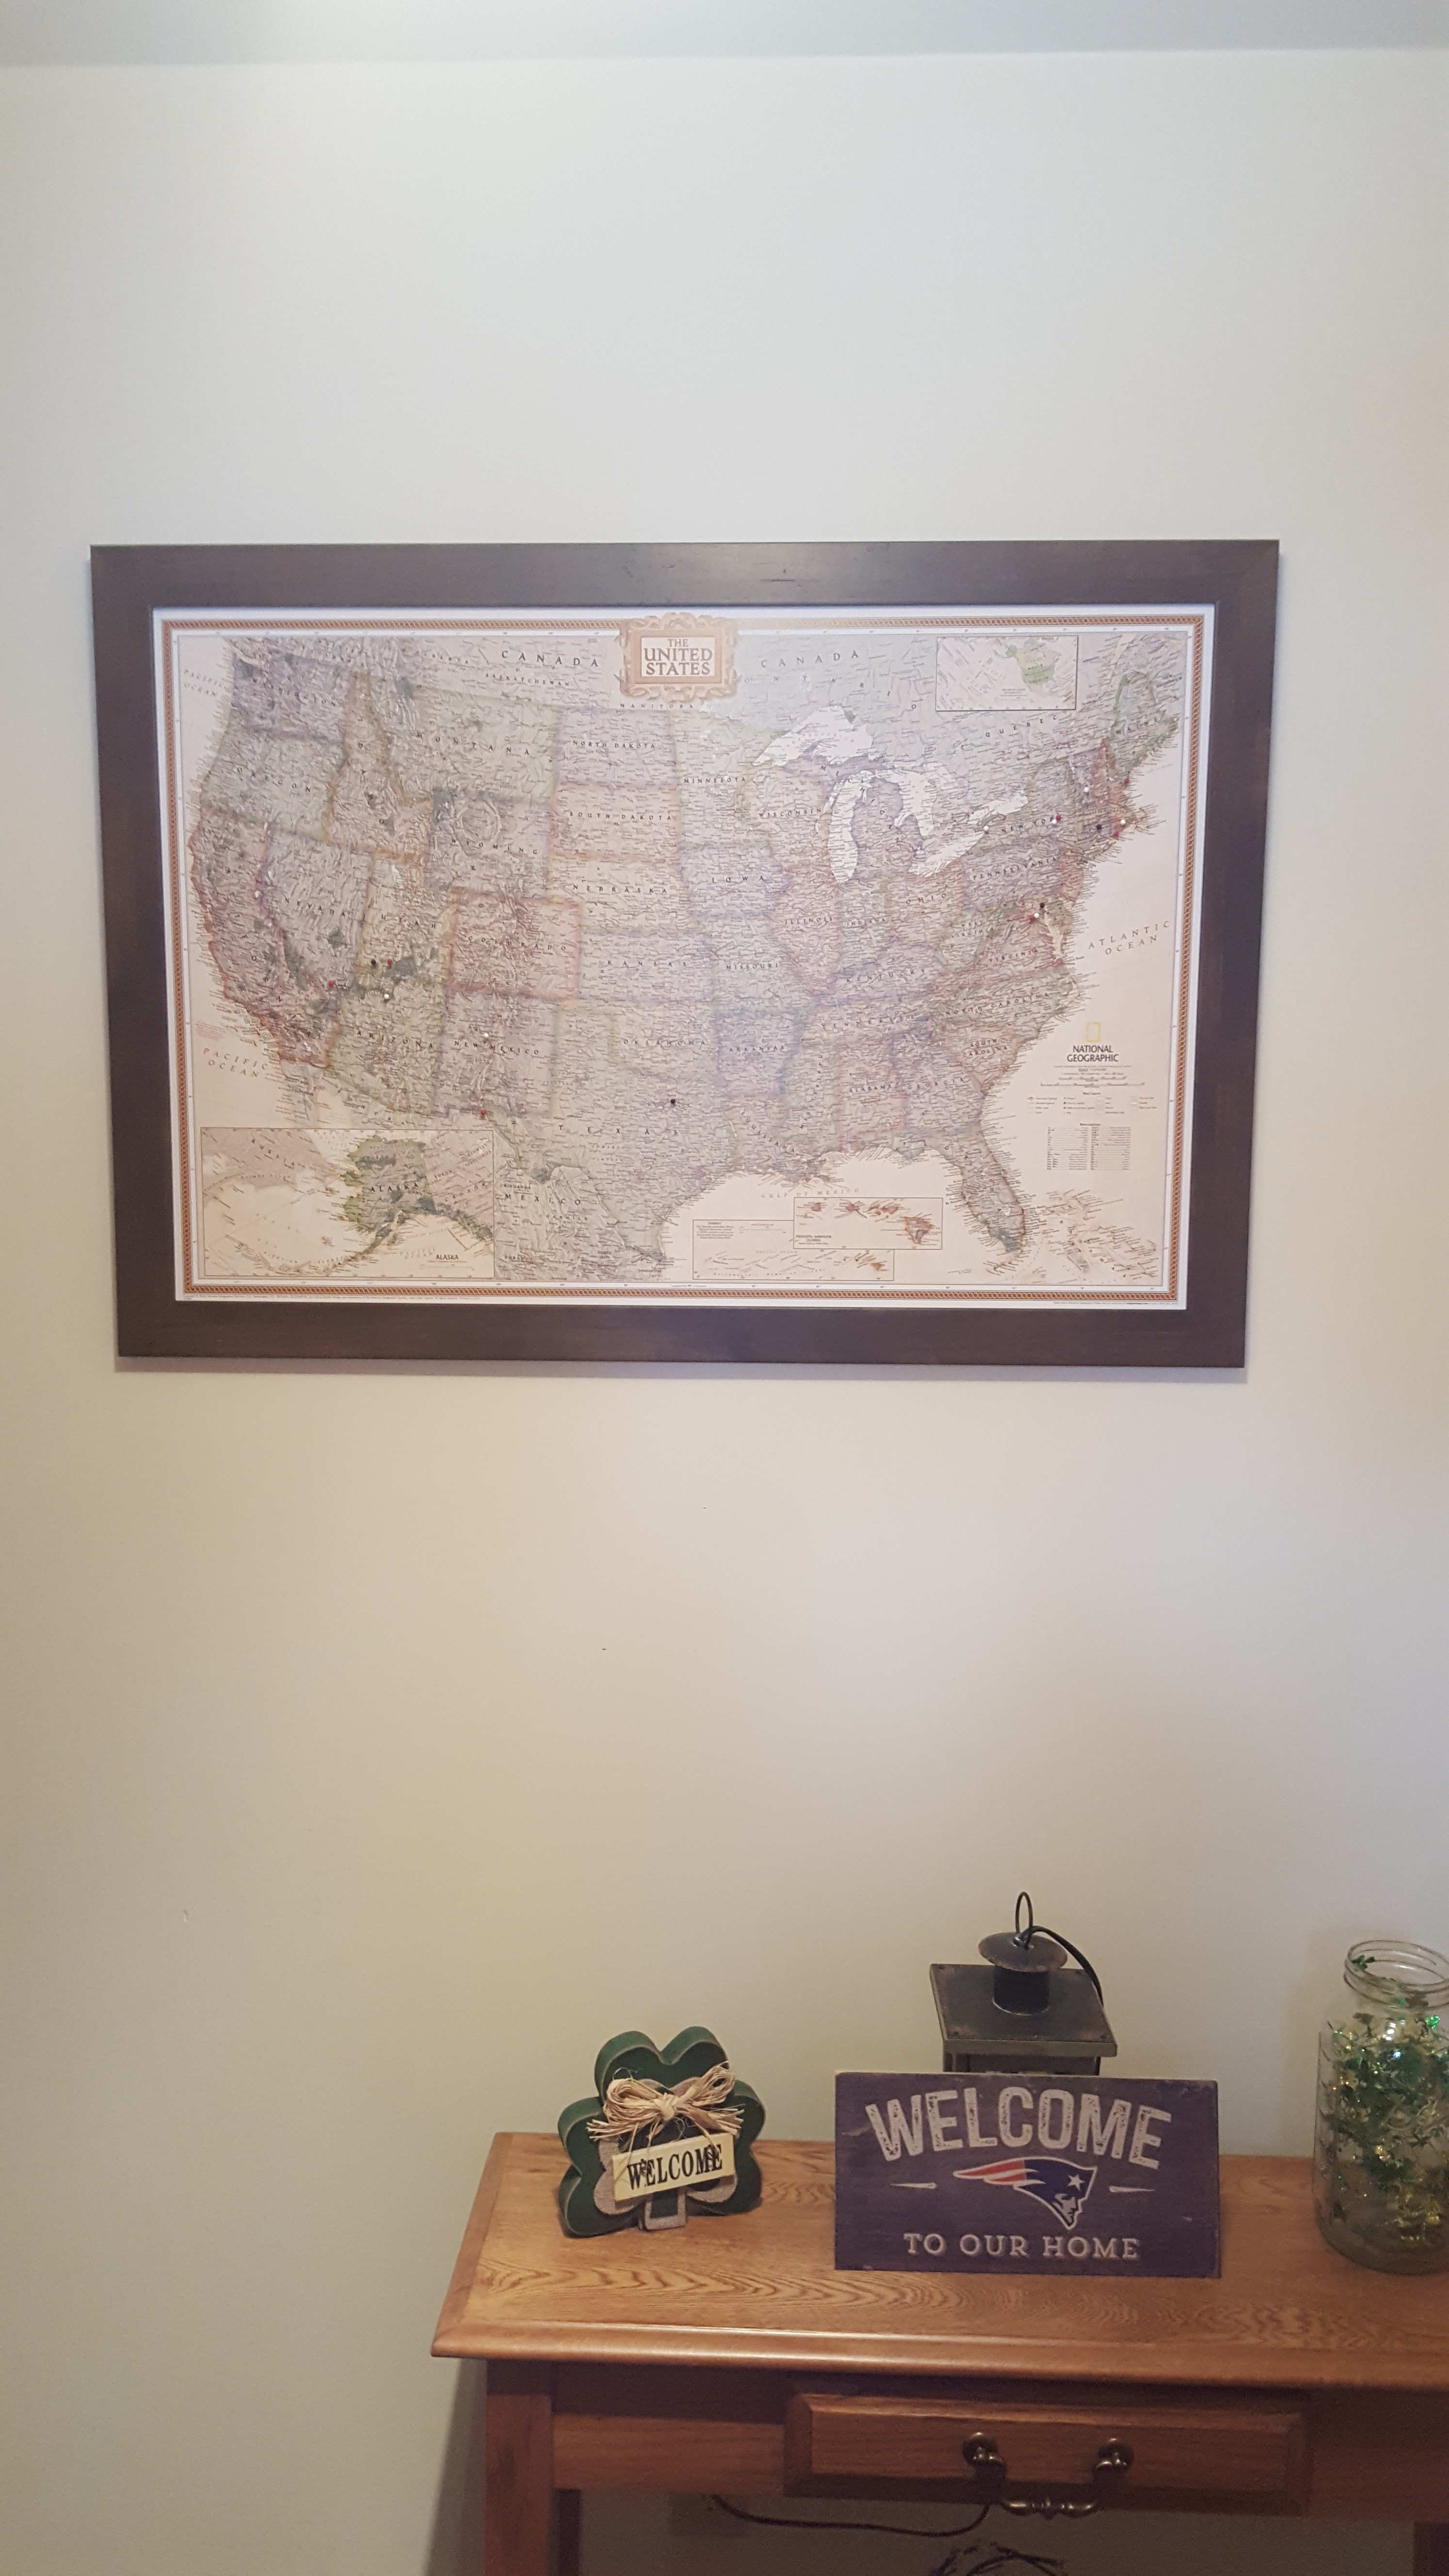 Usa map with target stock illustration image 53067262 businessman framed and personalized world travel maps with pins usa map target gumiabroncs Image collections